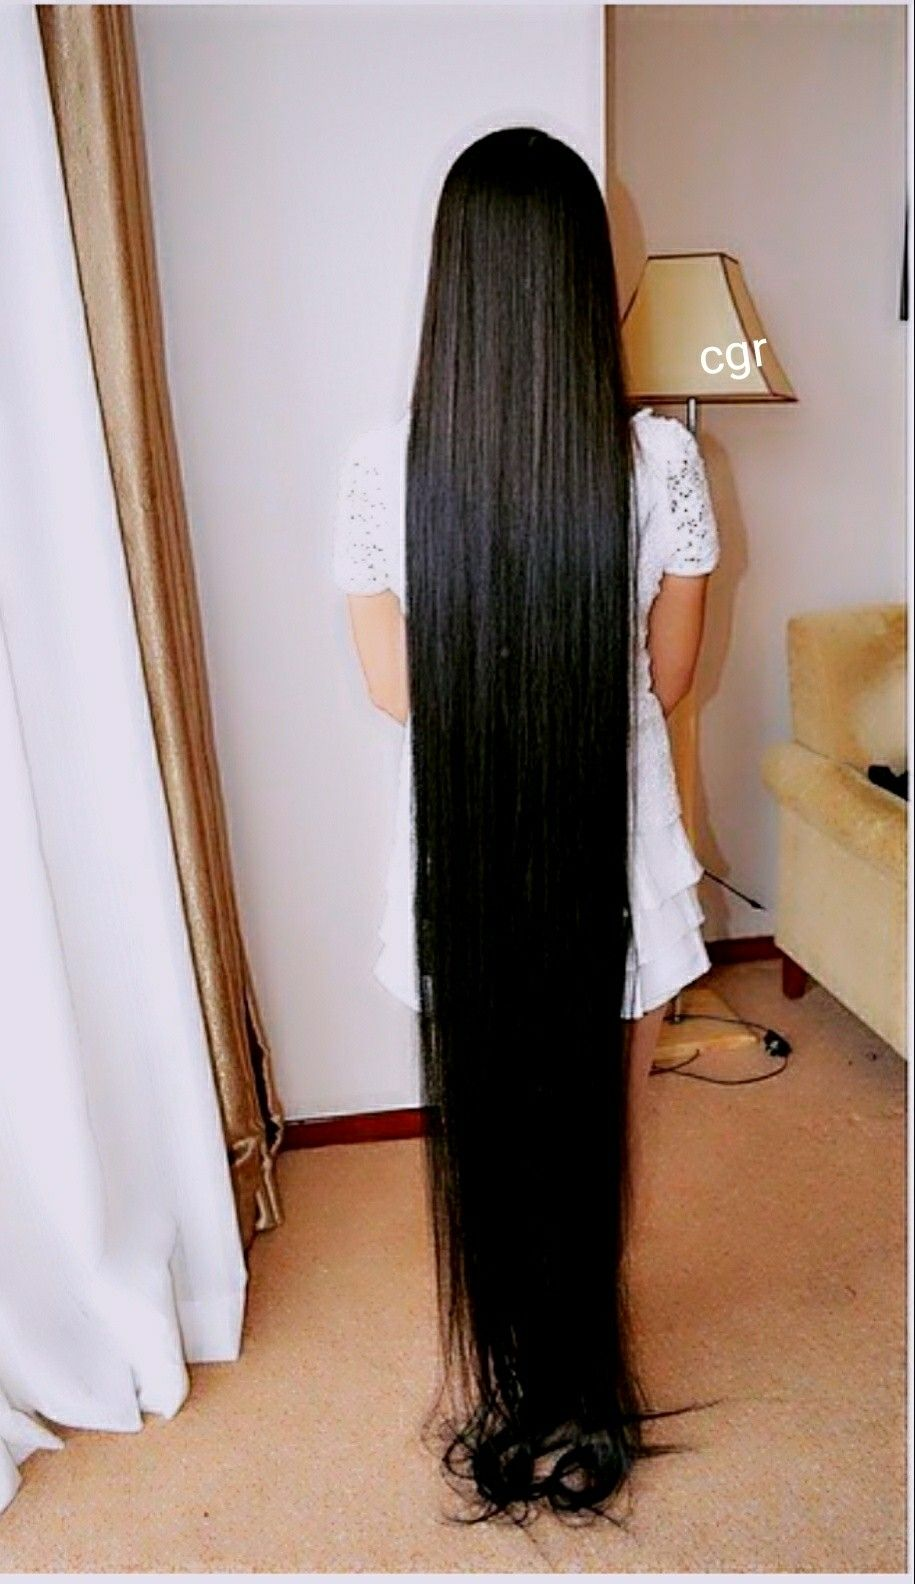 Pin on Cgr long hair show